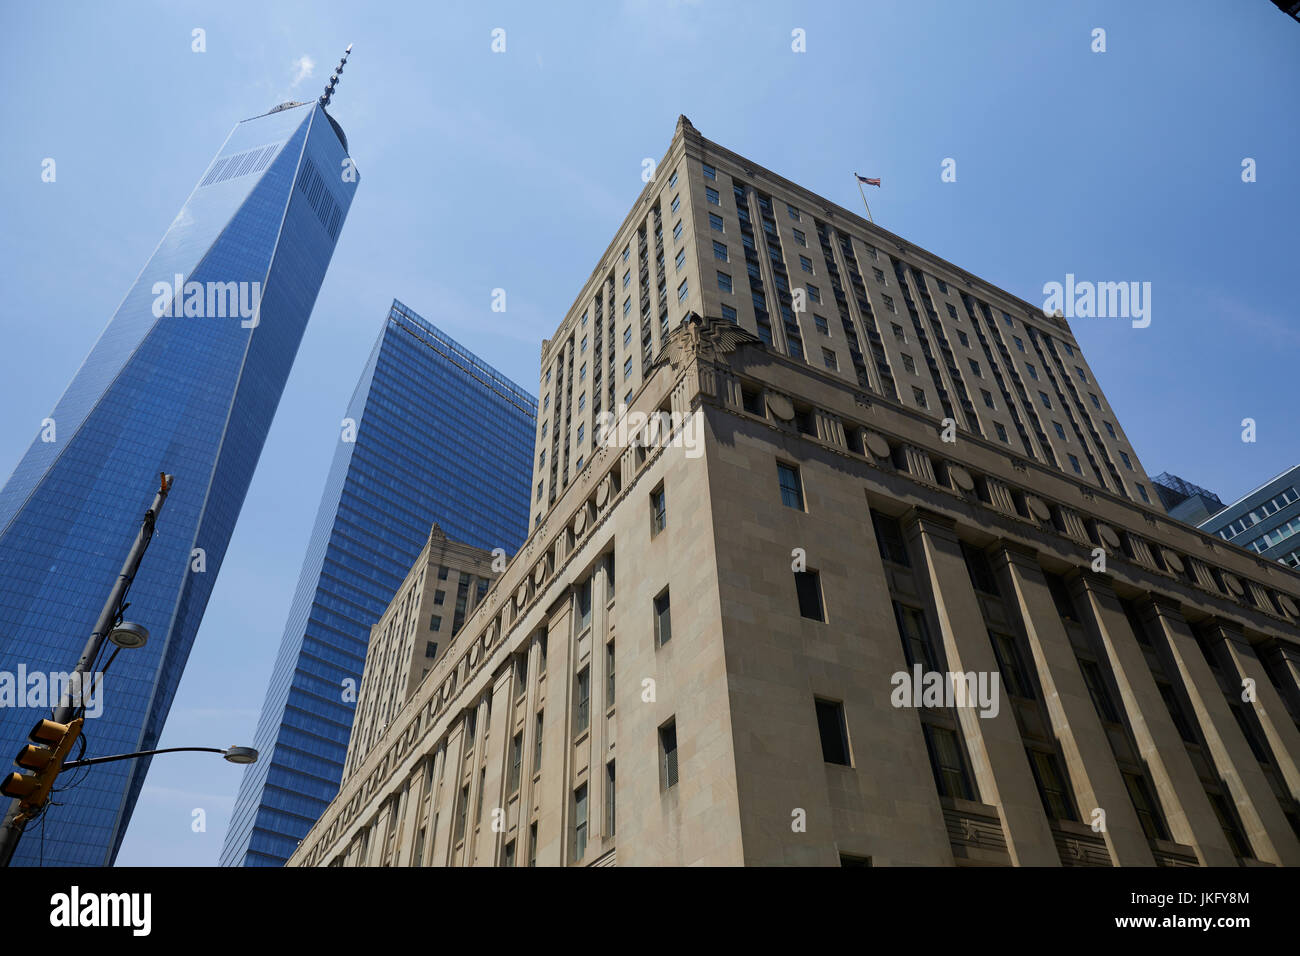 La Ciudad de Nueva York, Manhattan, el Servicio Postal de los Estados Unidos edificio Downtown NYC y One World Trade Foto de stock